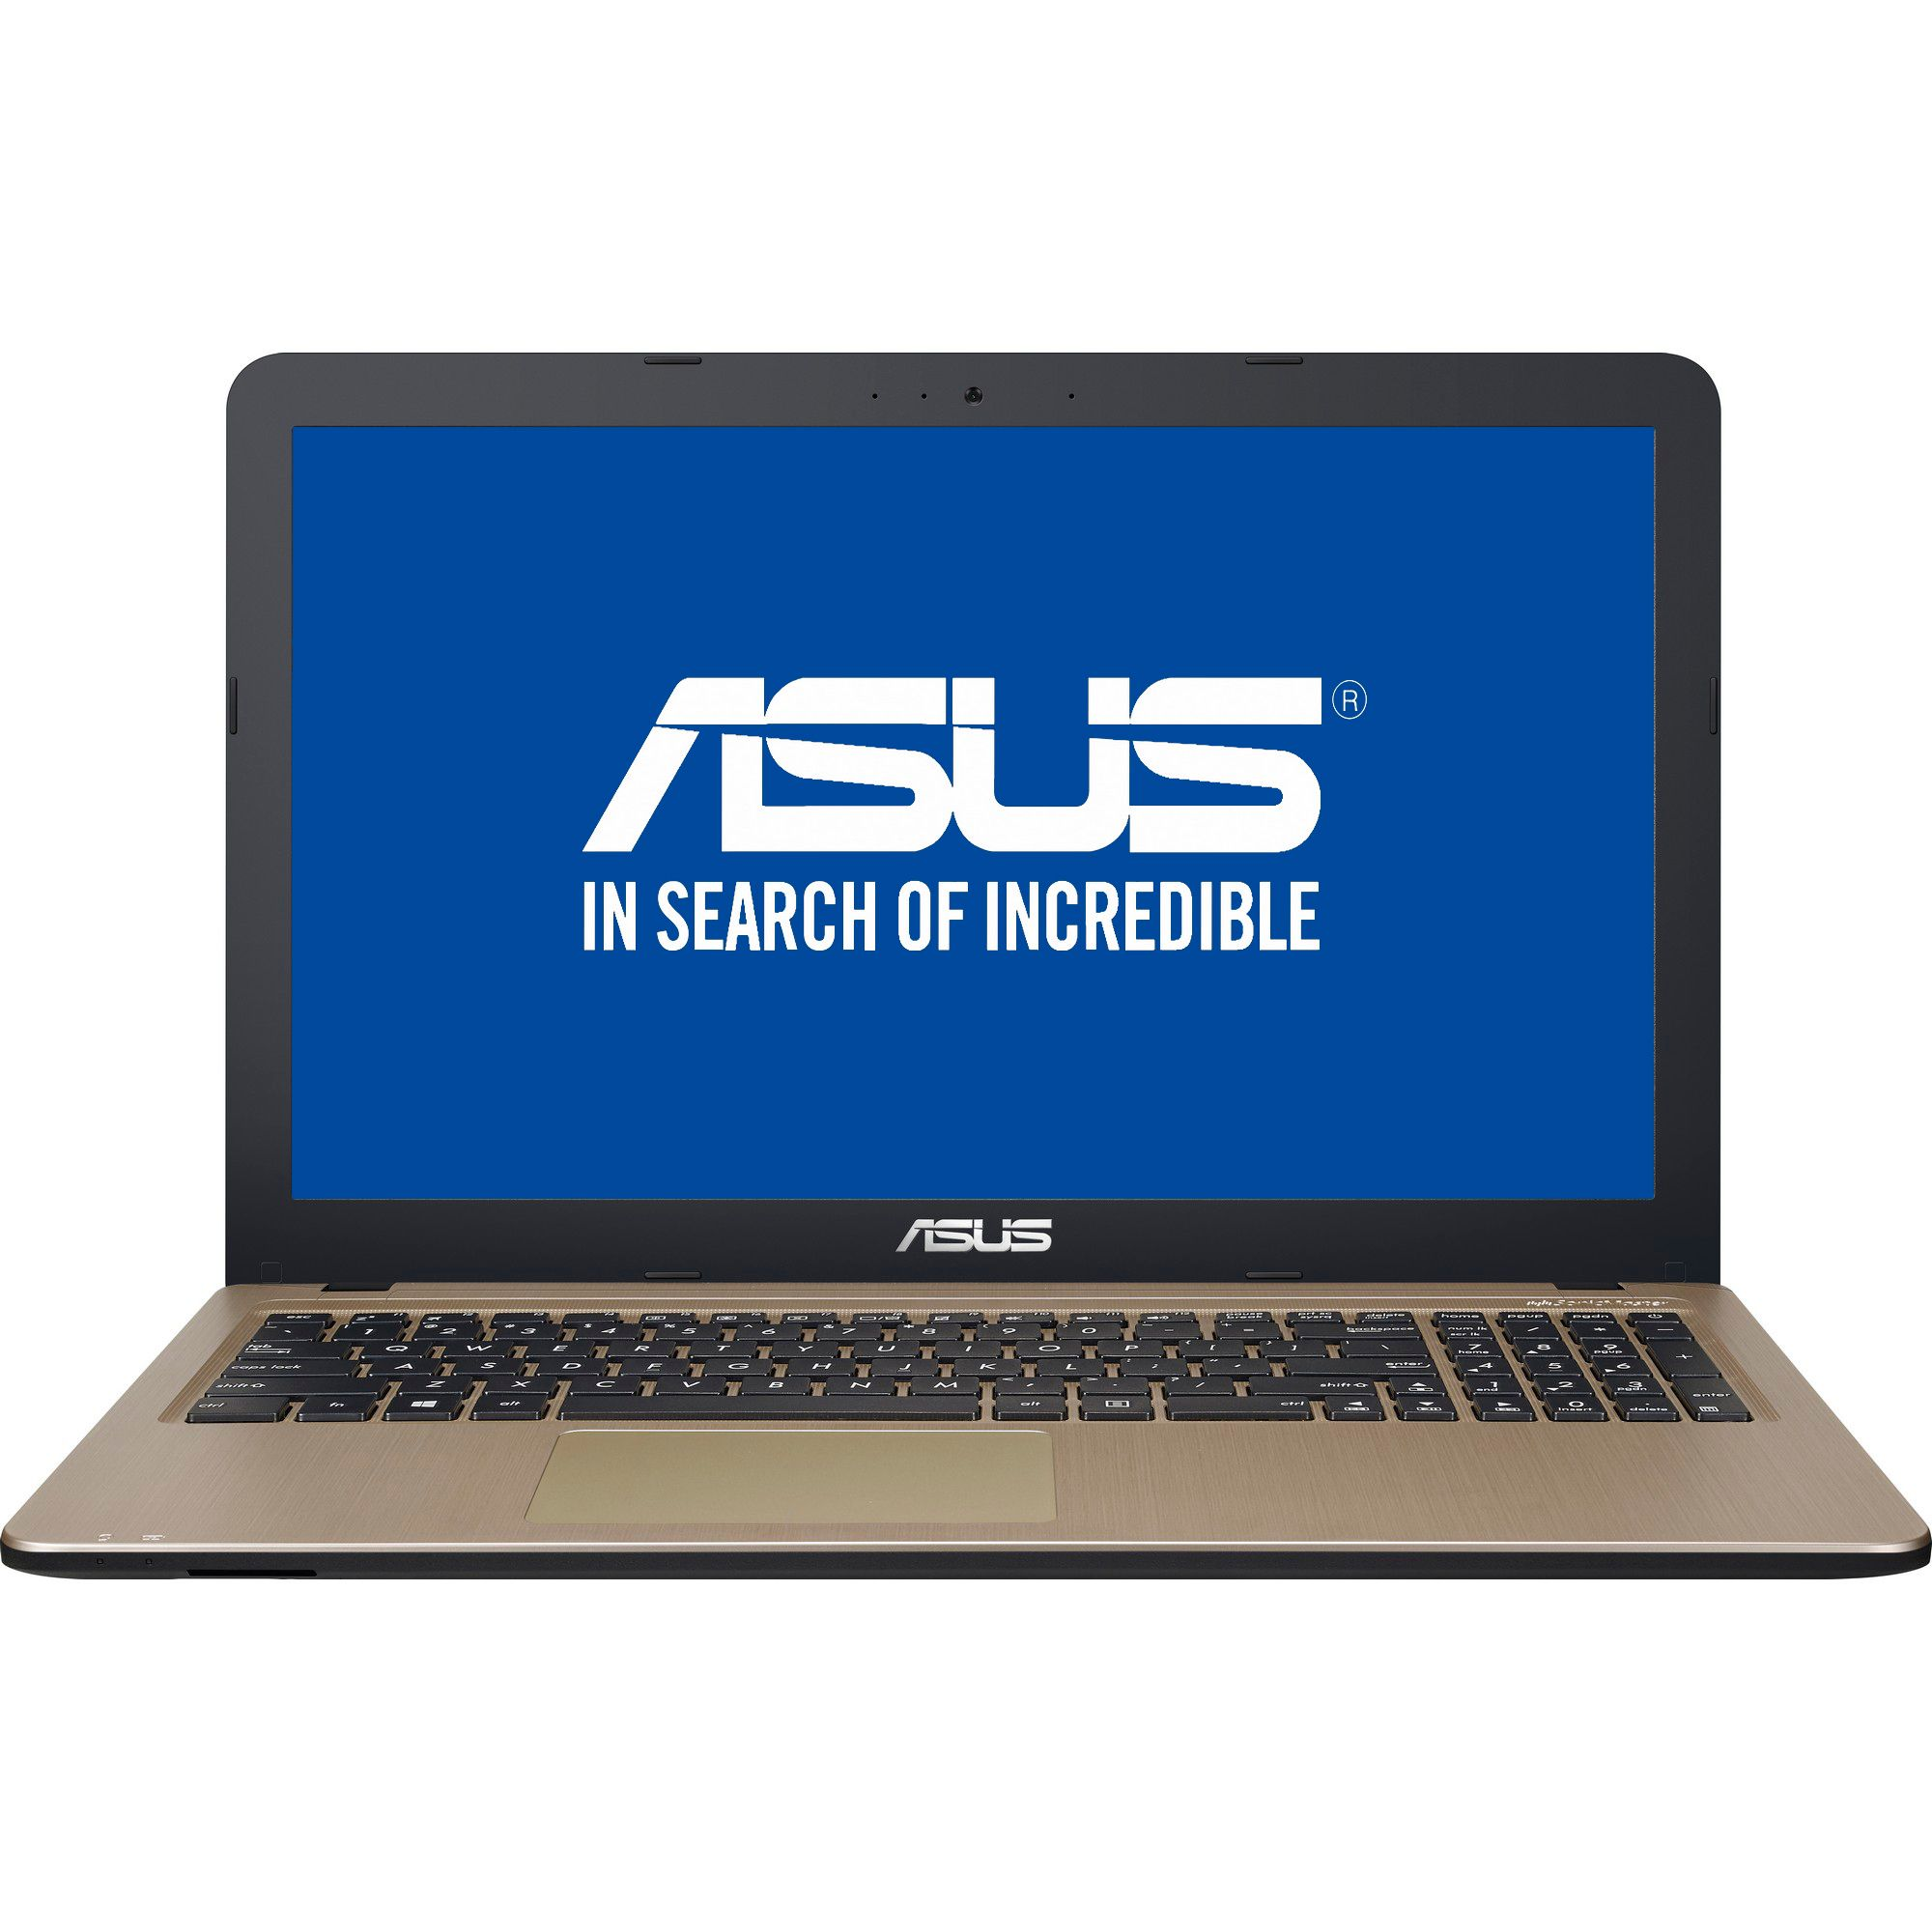 Notebook Asus VivoBook X540NA 15.6 HD Intel Celeron N3350 RAM 4GB HDD 500GB ODD Endless OS